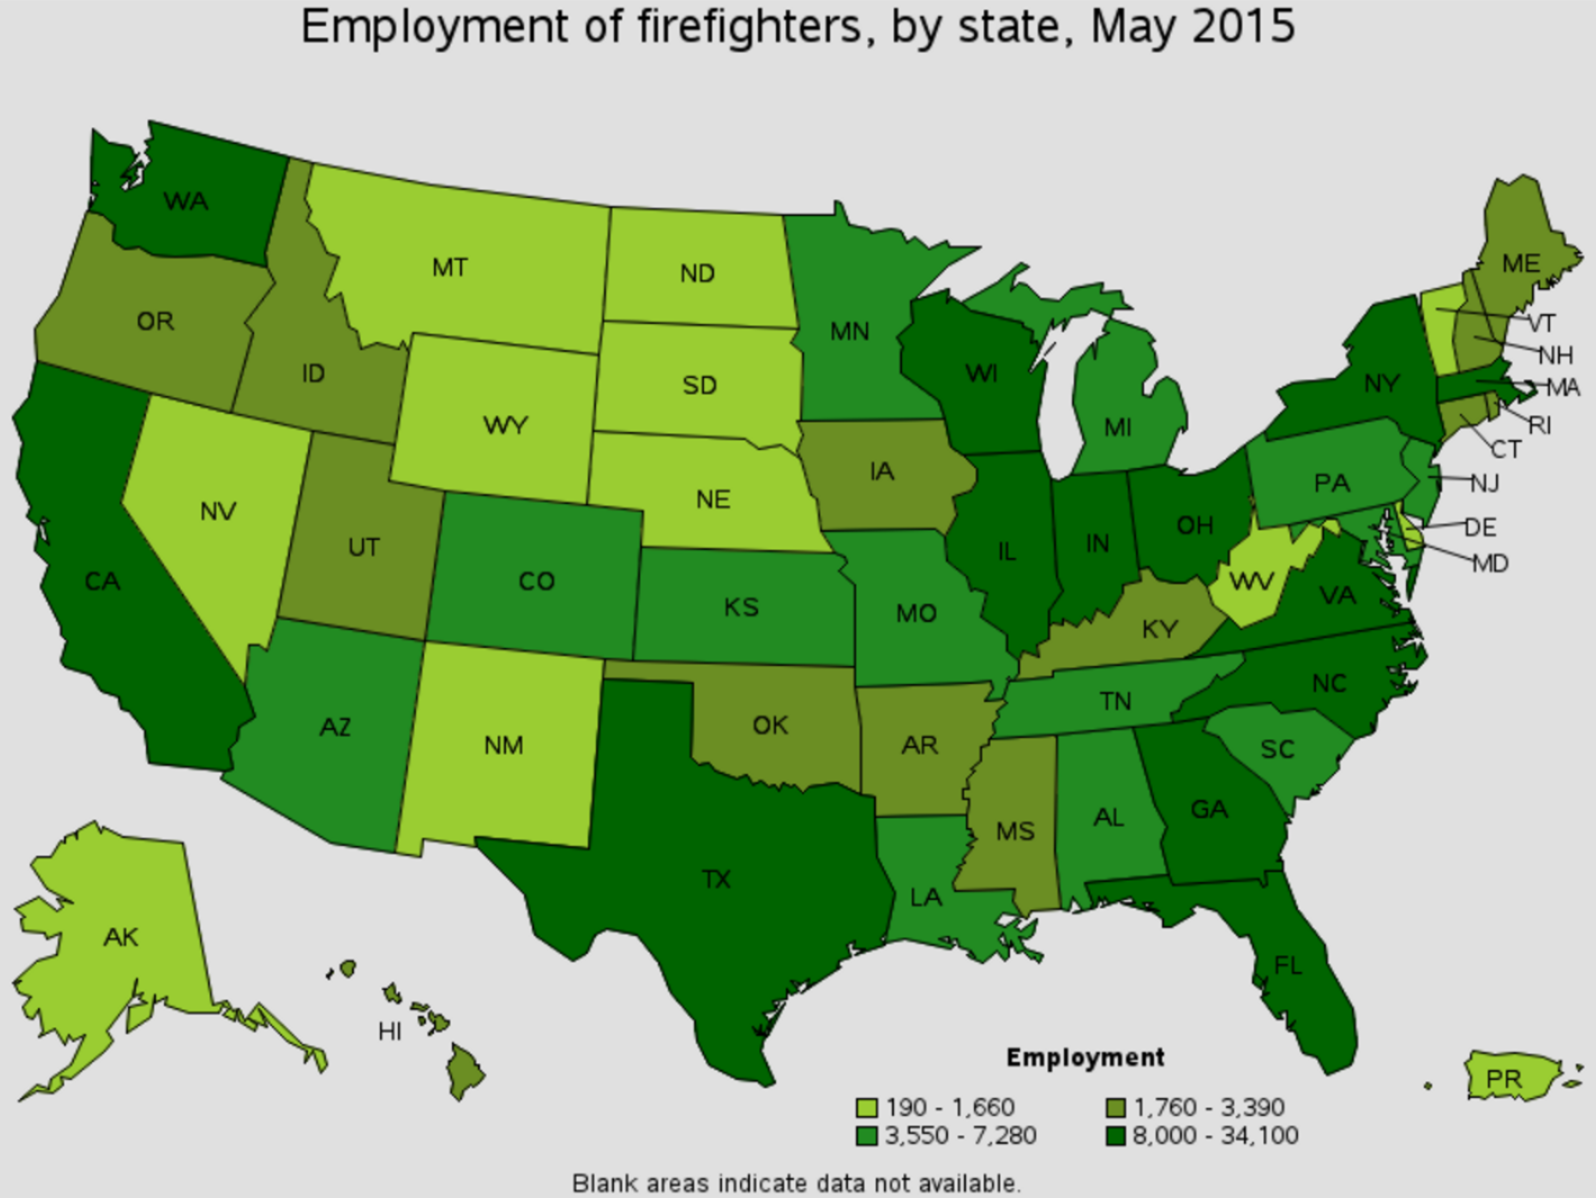 firefighter job outlook by state Zalma Missouri